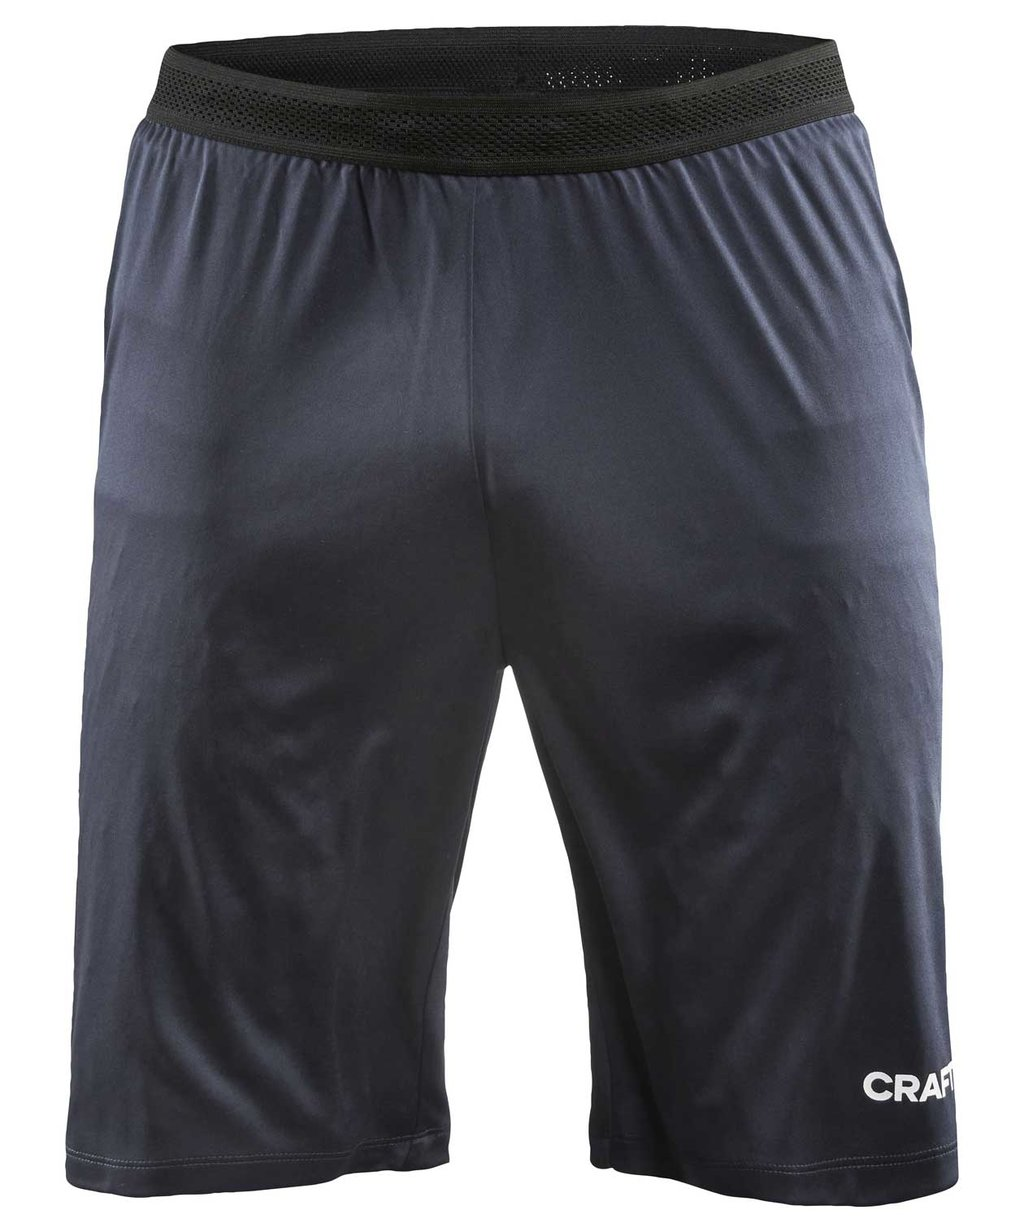 Craft Evolve shorts, Asphalt